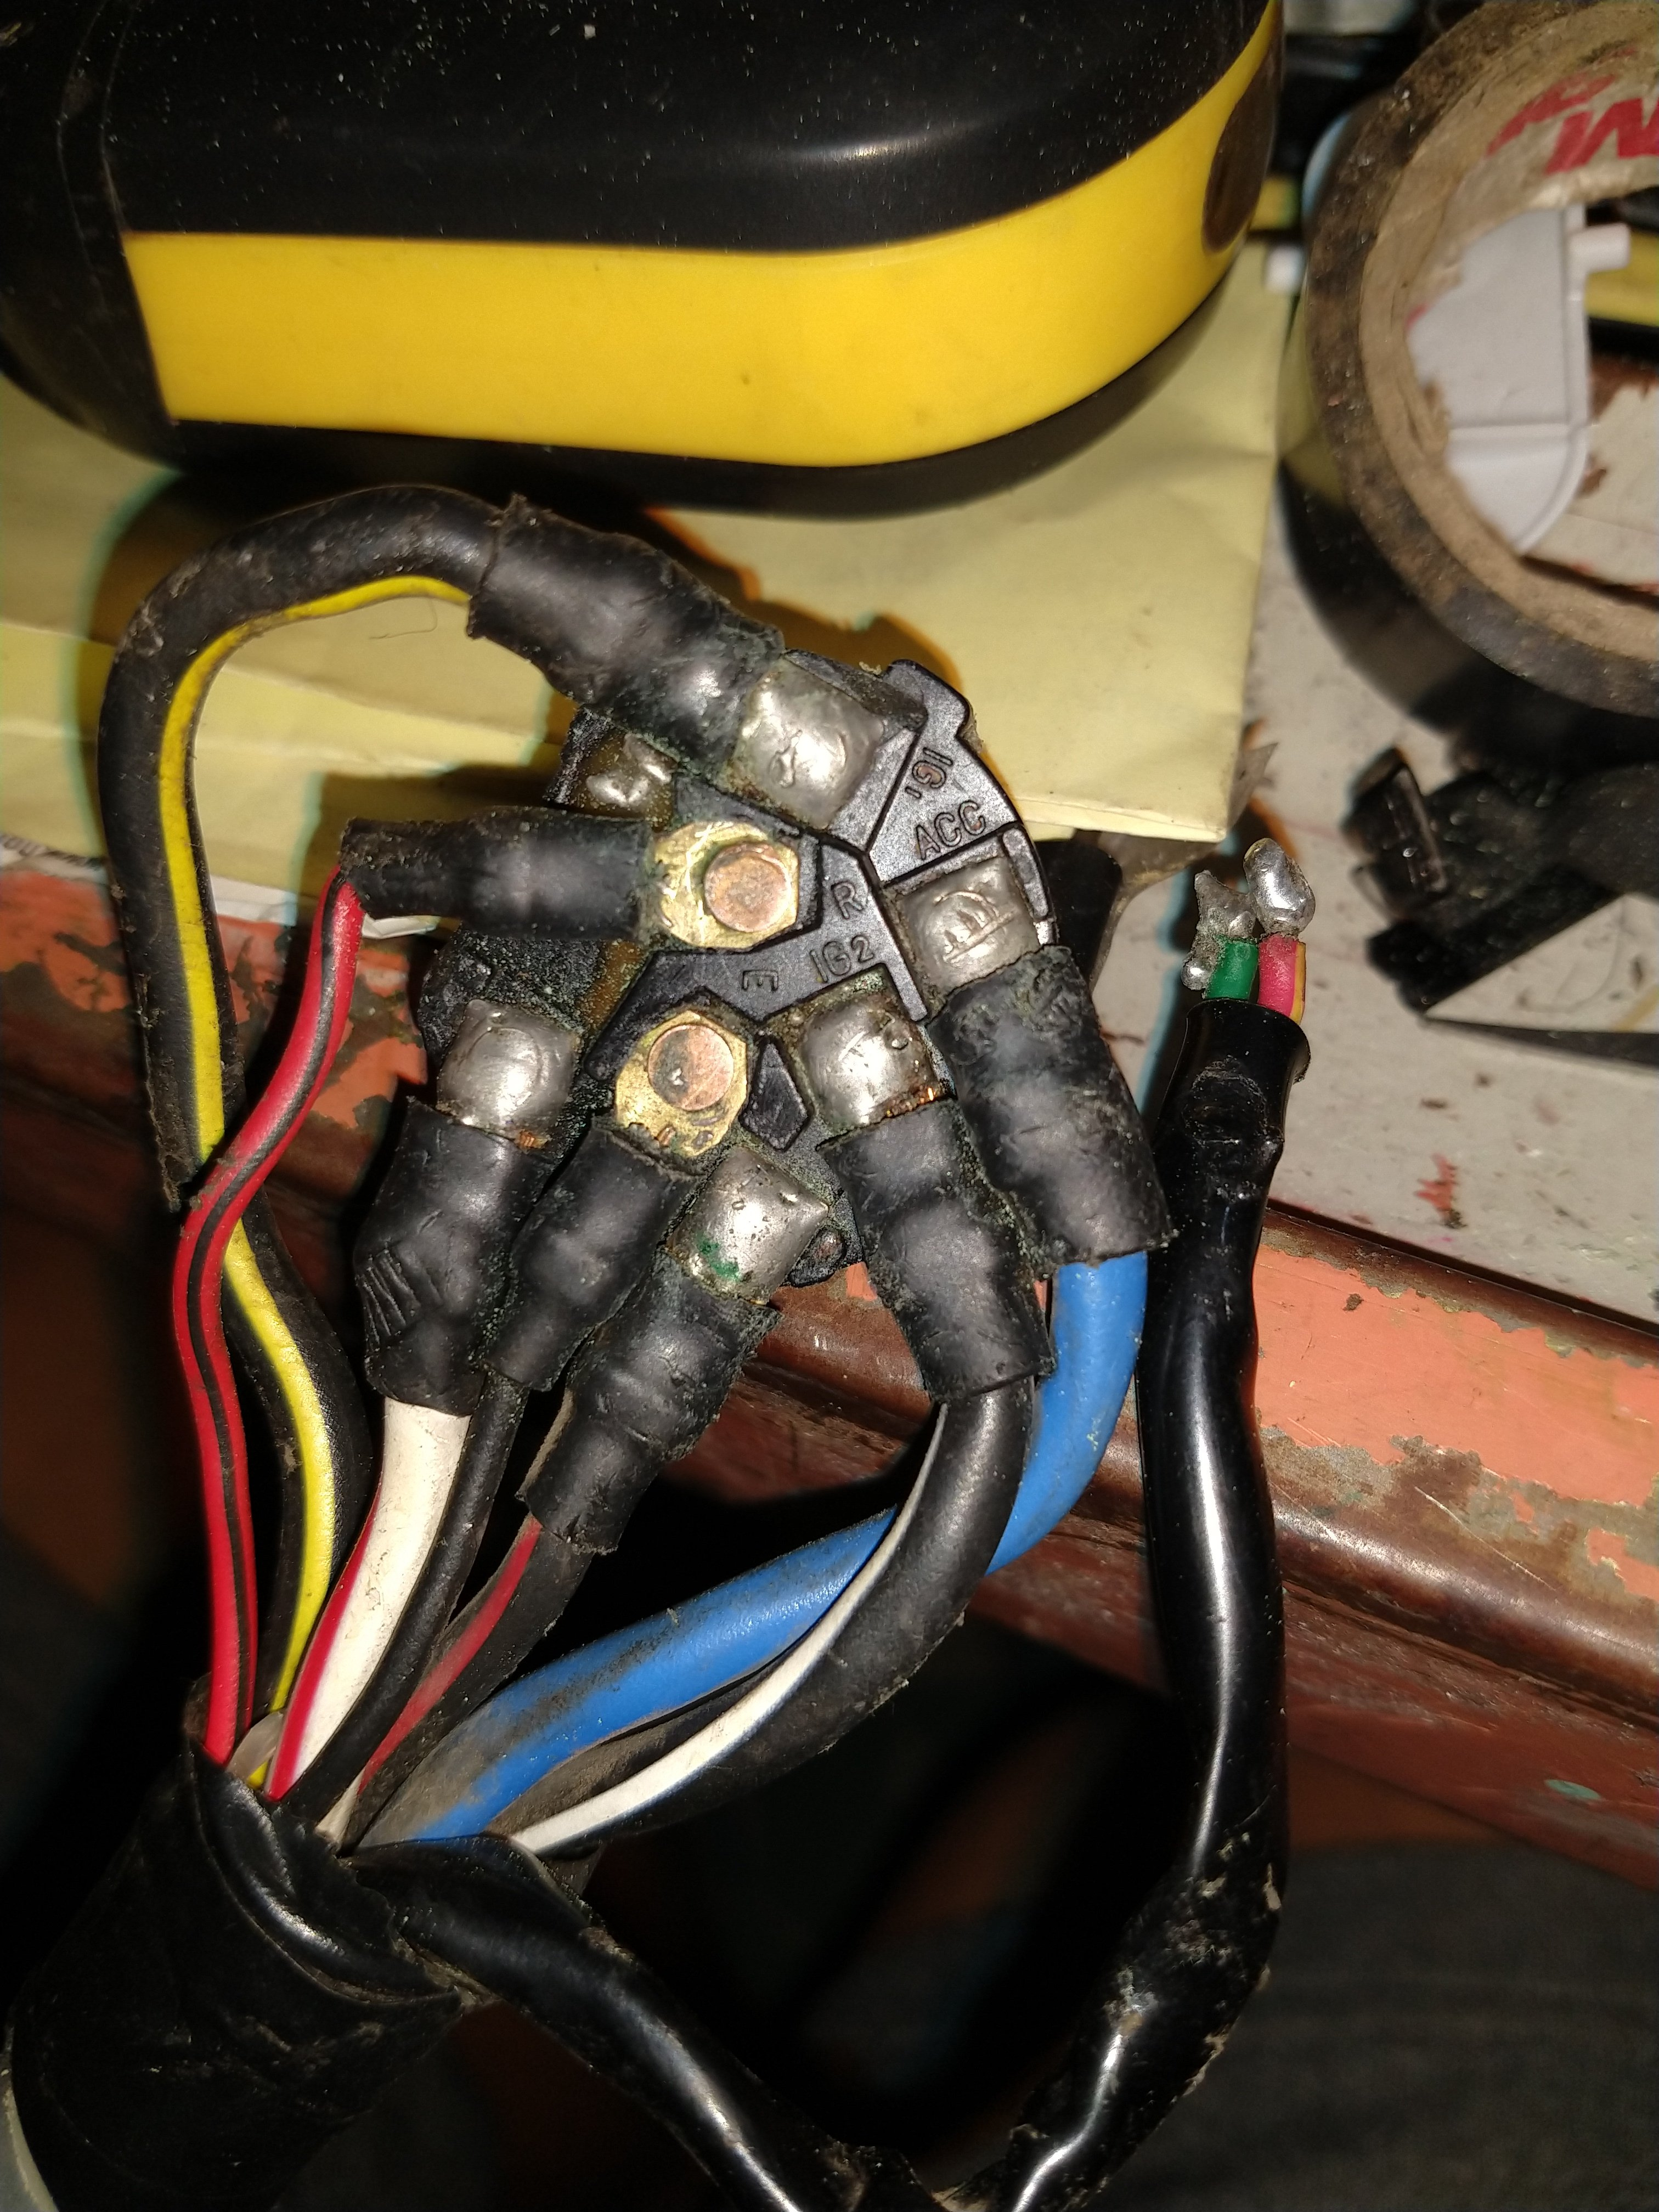 IM trying to replace ignition switch on 1989 mazda B2200, I would like to  know which wires areJustAnswer